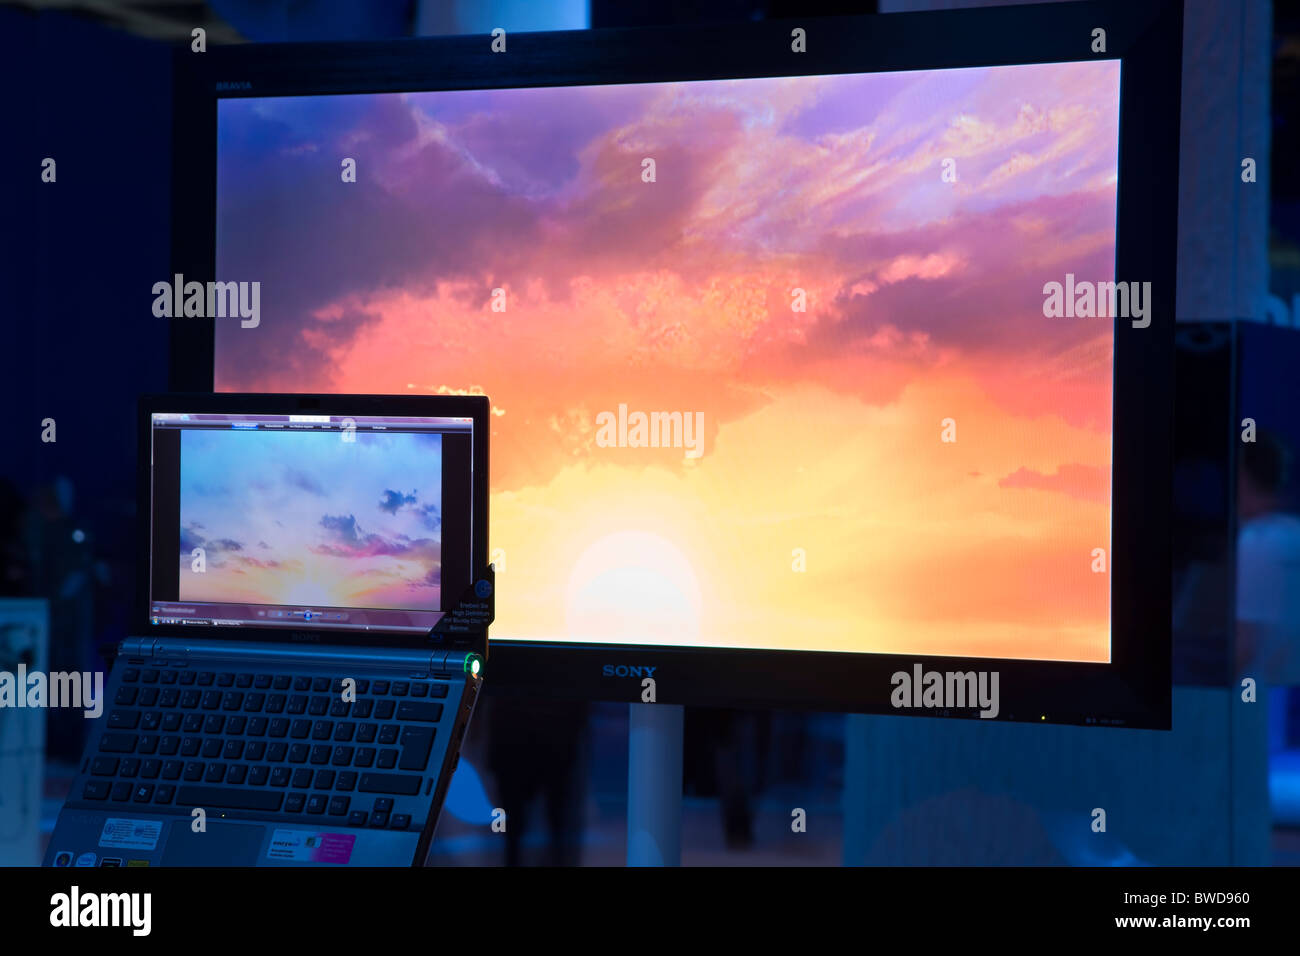 Widescreen big monitor and laptop, Sony modern multimedia system - Stock Image